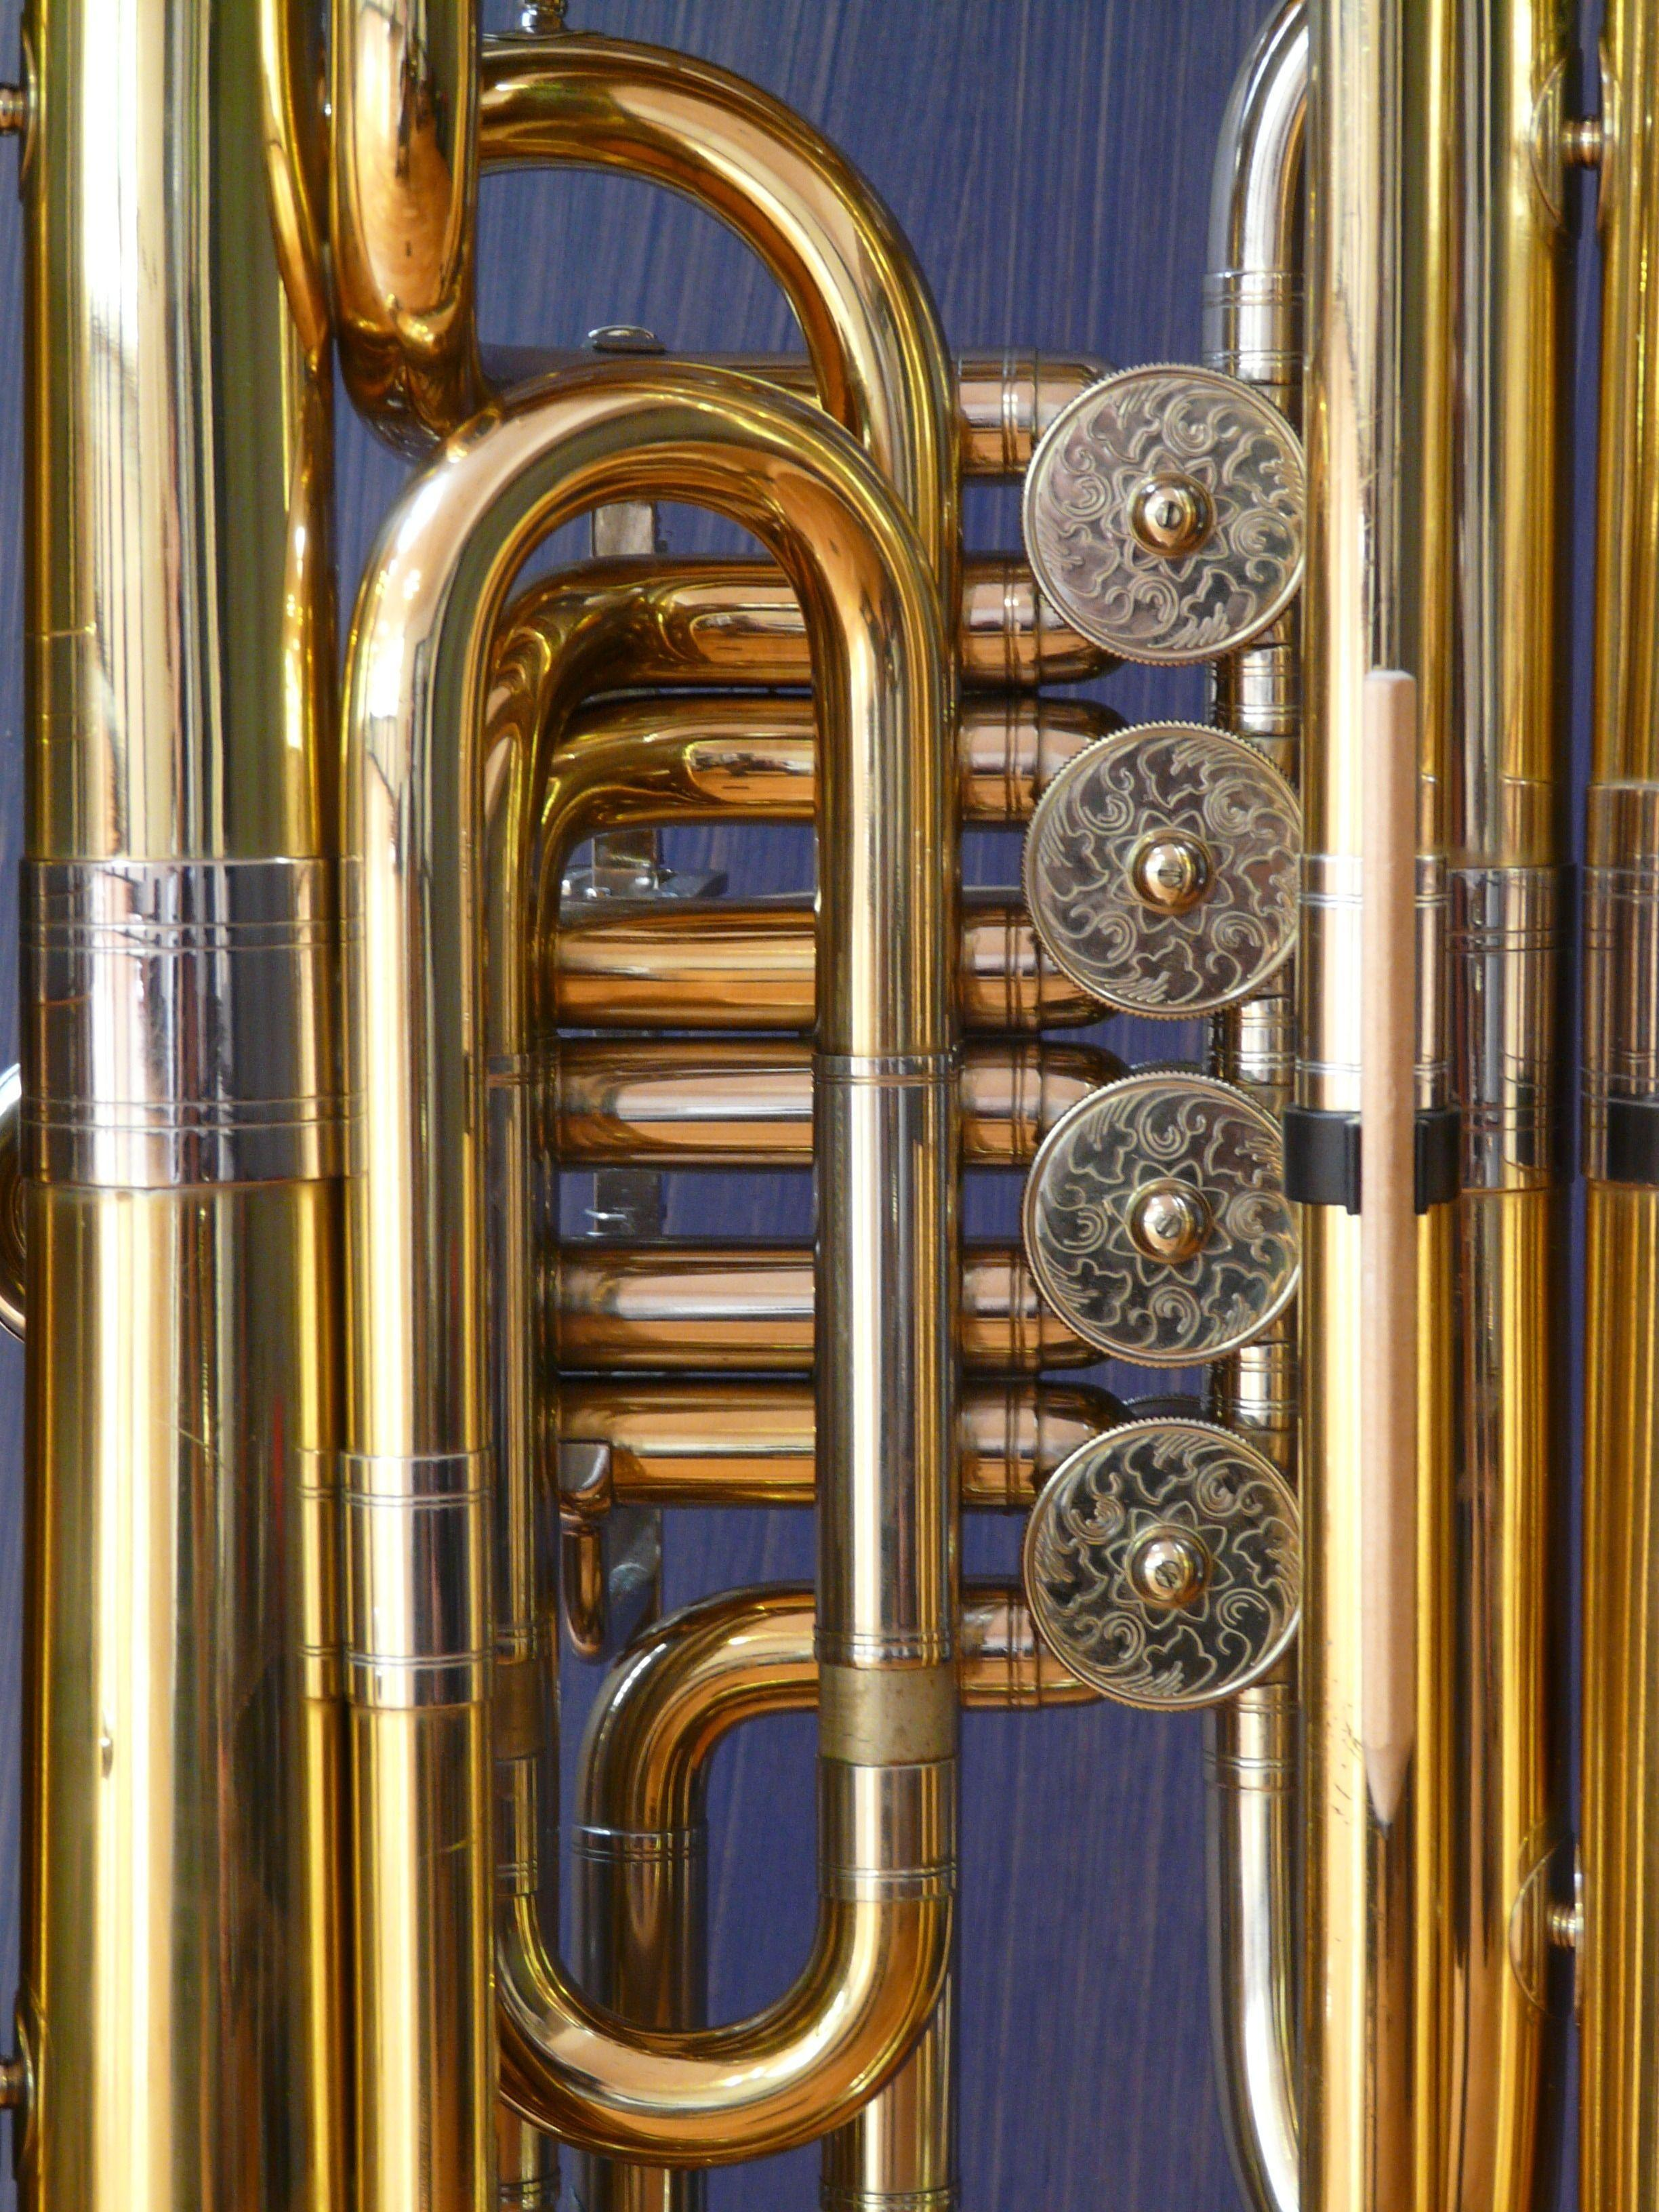 stainless steel and brass wind instrument free image | Peakpx